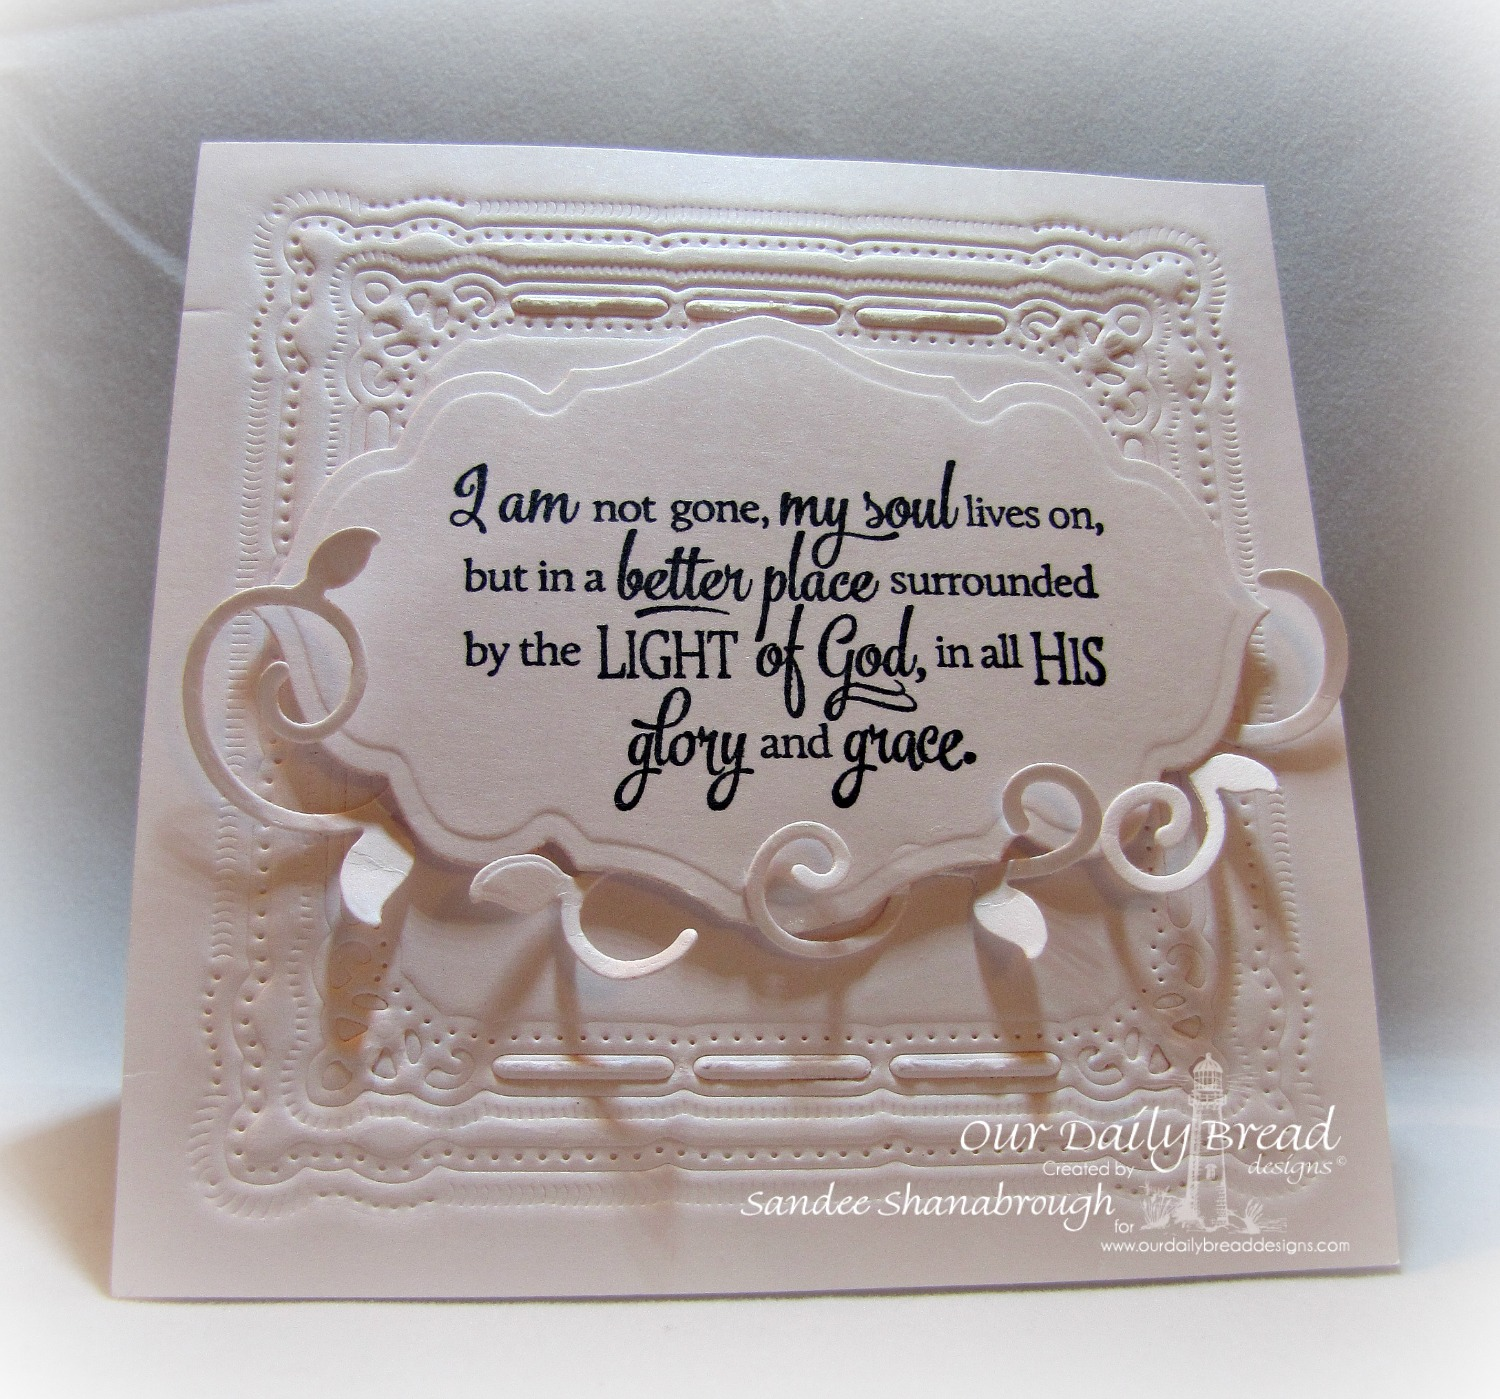 Stamps  - Our Daily Bread Designs Sentiment Collection 3, ODBD Custom Antique Labels & Border Dies, ODBD Custom Fancy Foliage Die